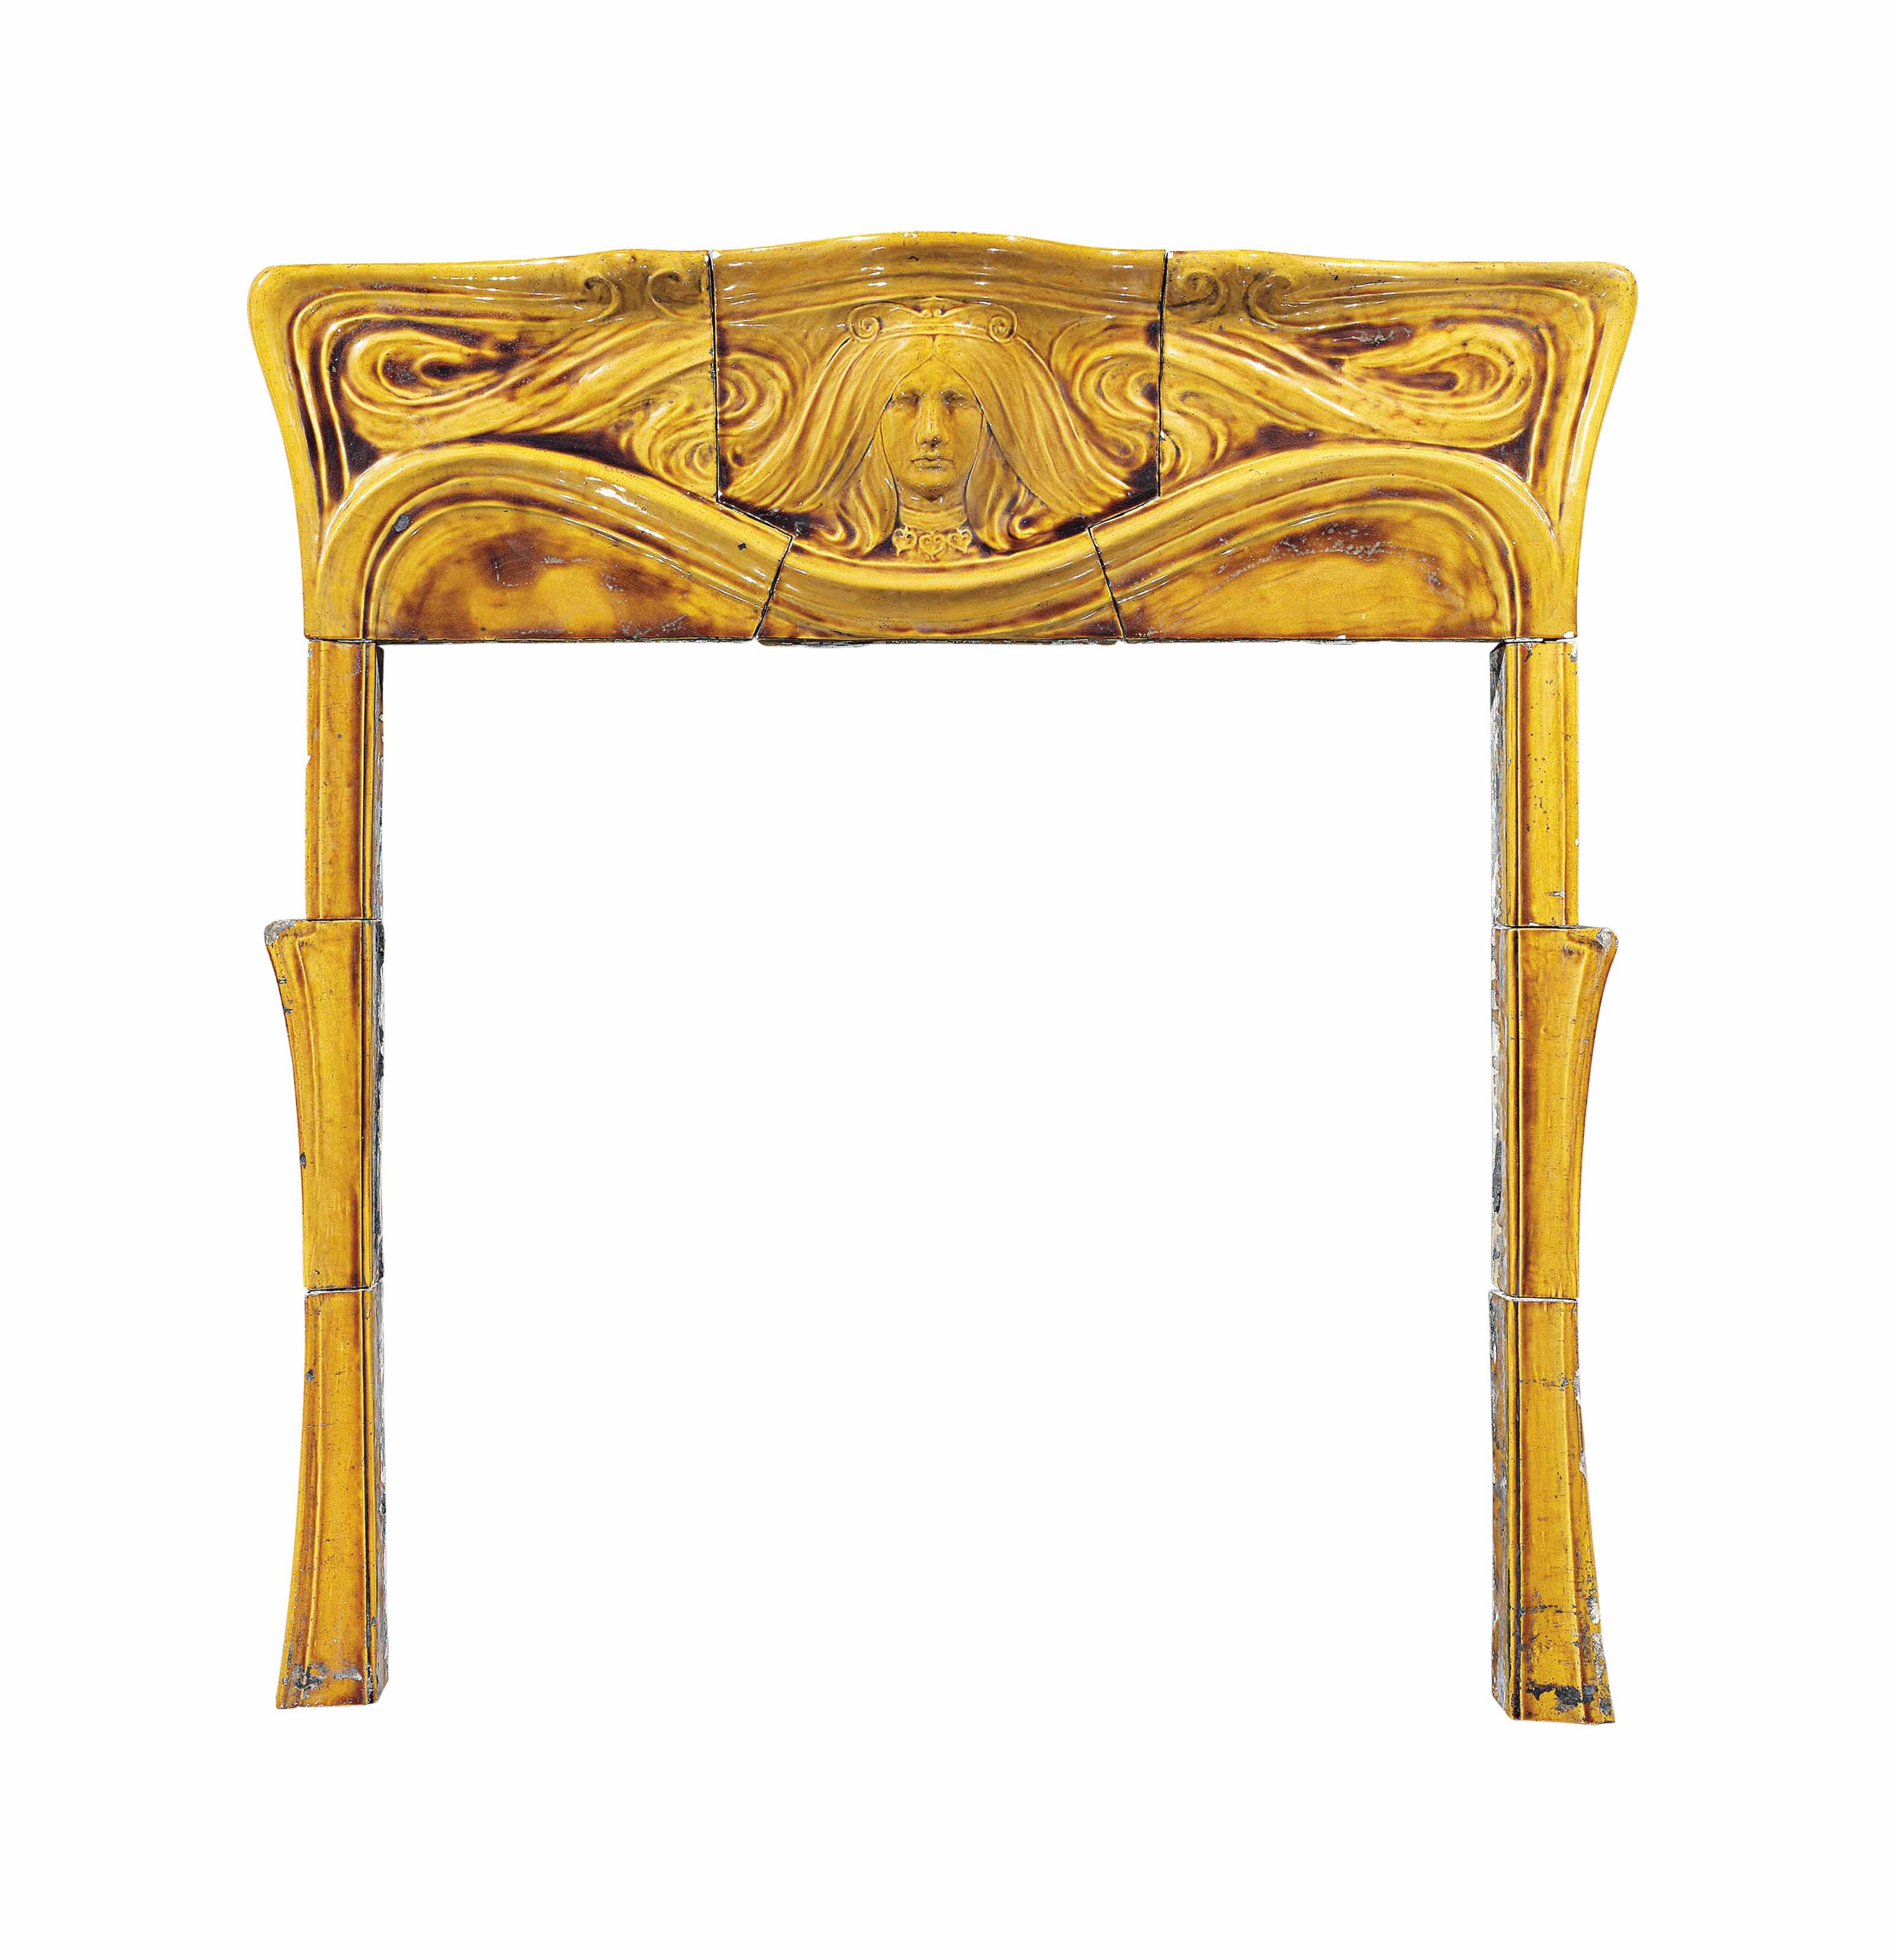 AN ART NOUVEAU GLAZED POTTERY FIRE SURROUND, ATTRIBUTED TO BURMANTOFTS (1842-1957) TO A DESIGN BY WILLIAM J. NEATBY (1860-1910)